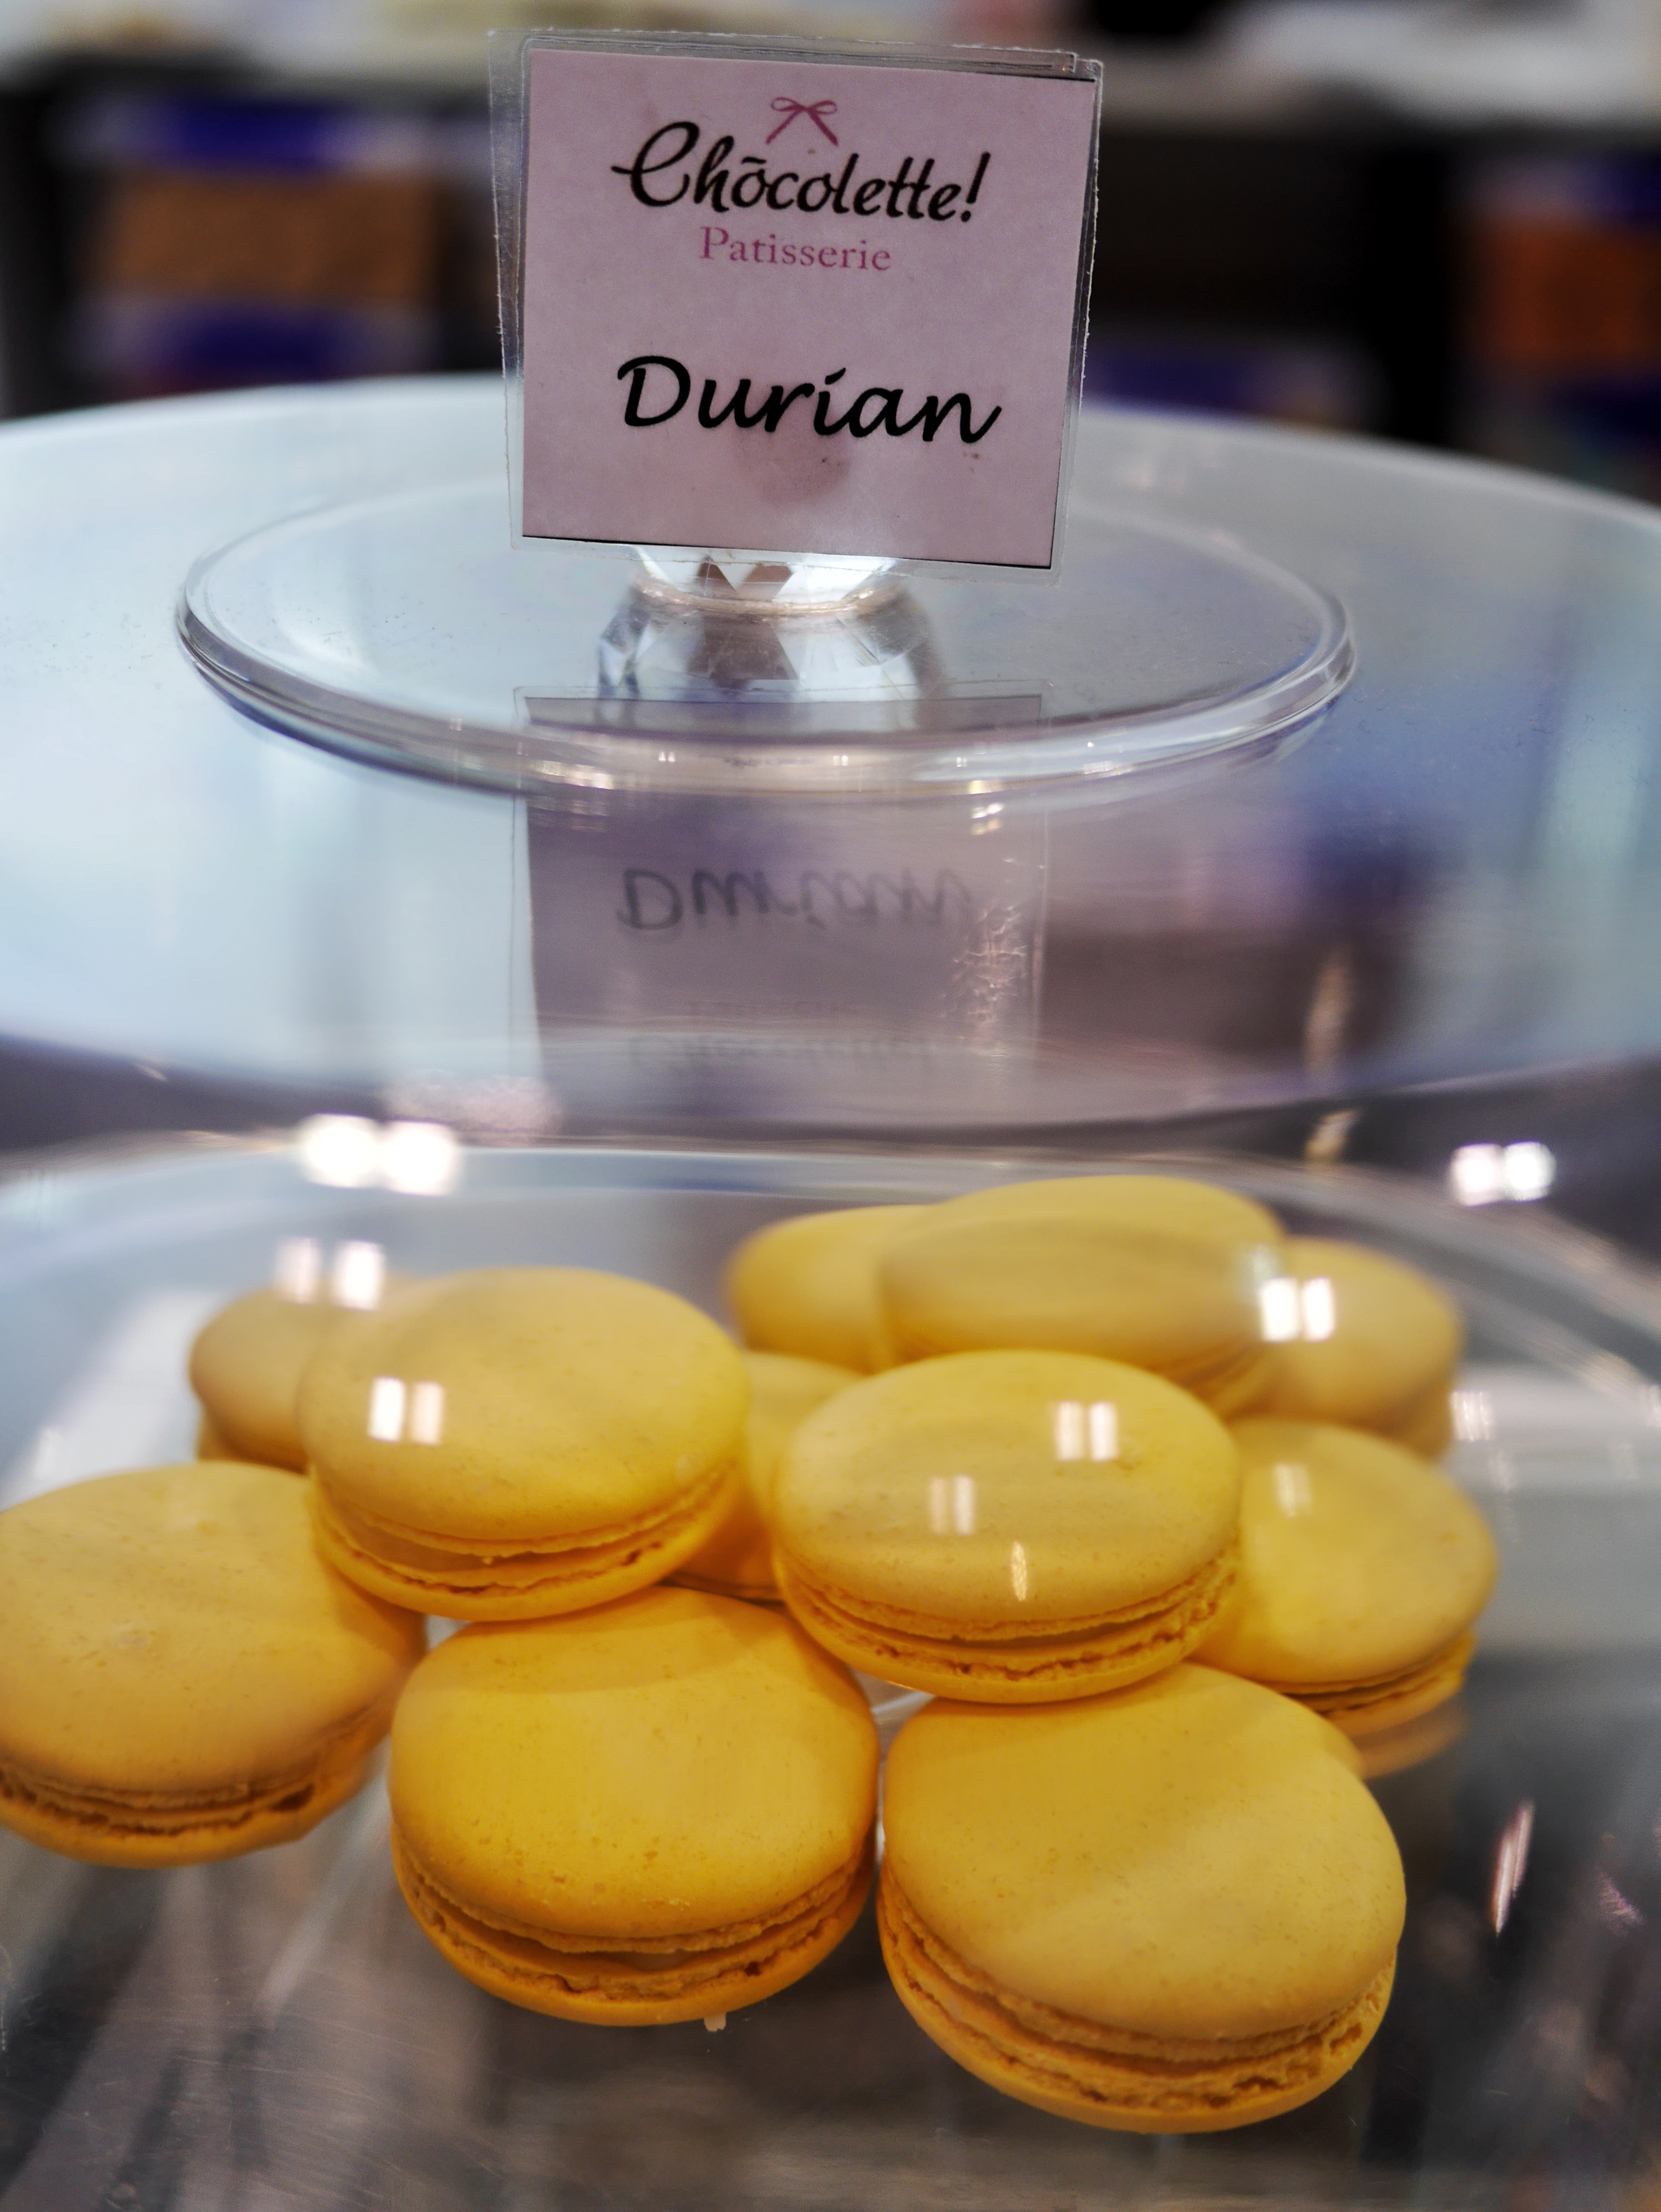 Durian Macarons Chocolette Melbourne Cake Bake and Sweets Celebrity Stage thesweetwanderlust.com